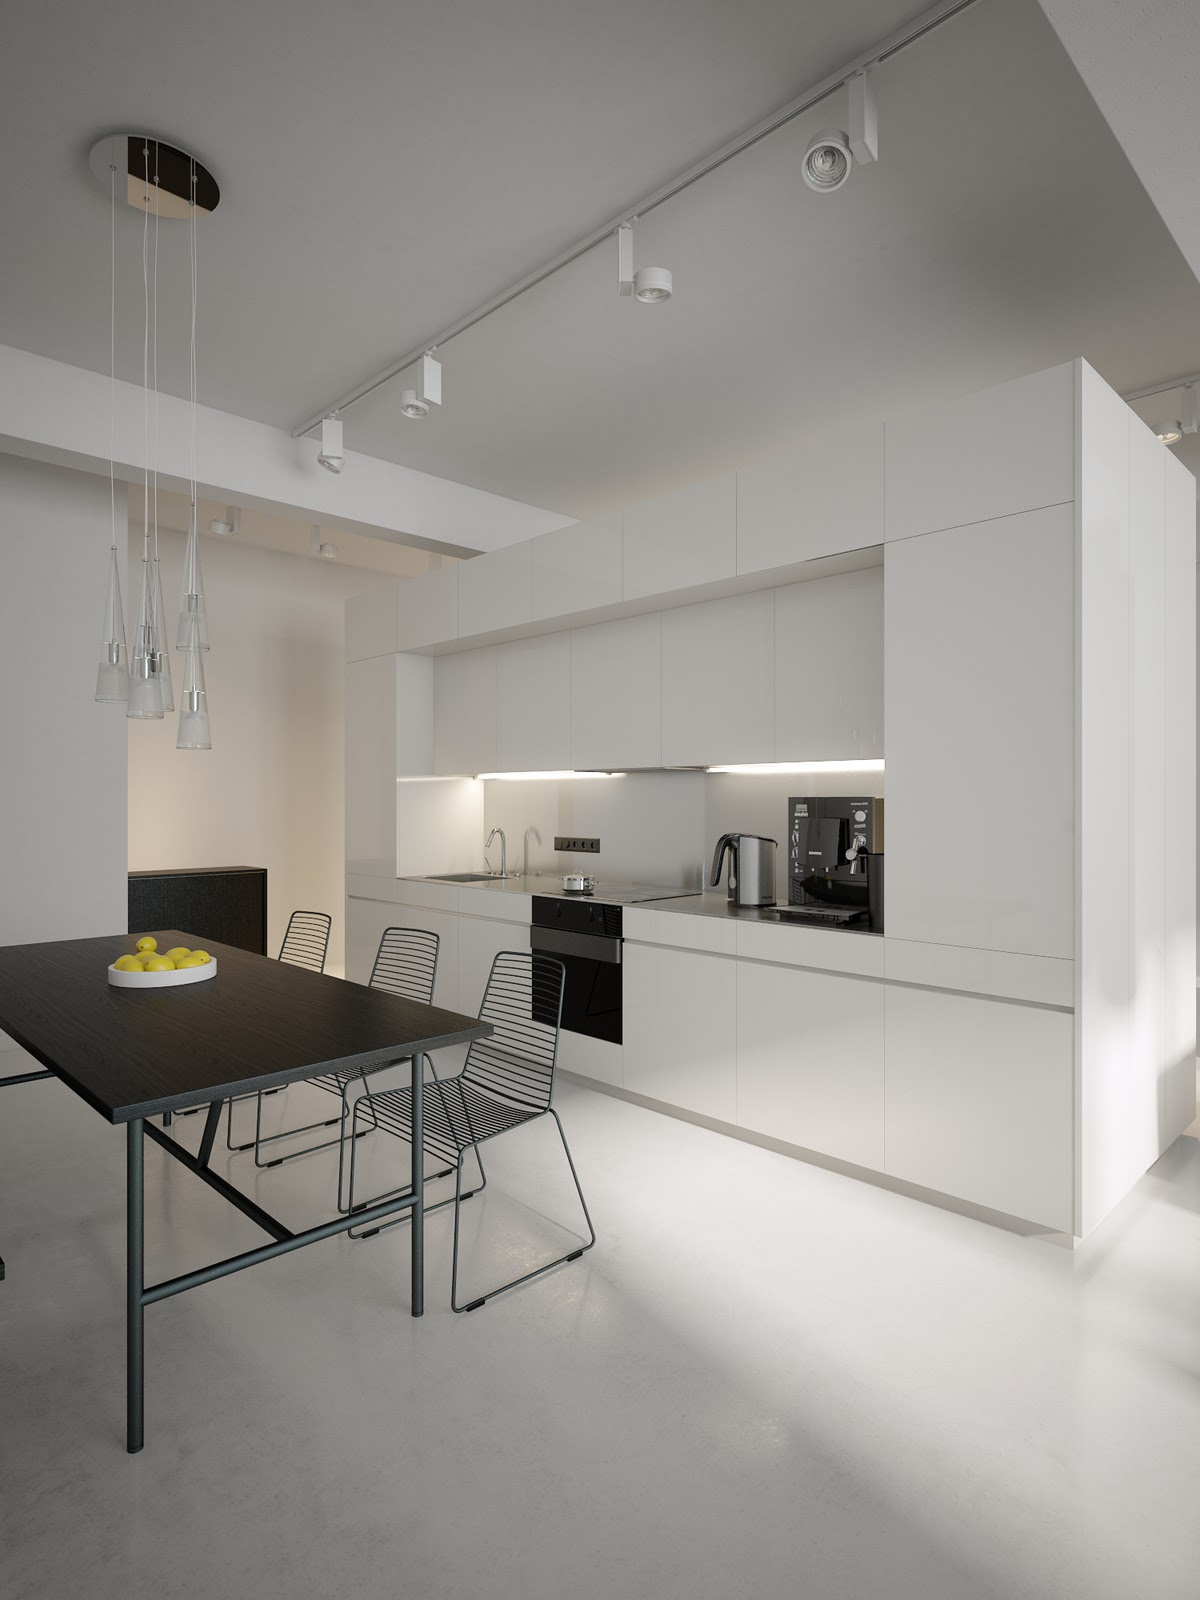 Kitchen Diner Wall Lights : Modern Minimalist Black and White Lofts